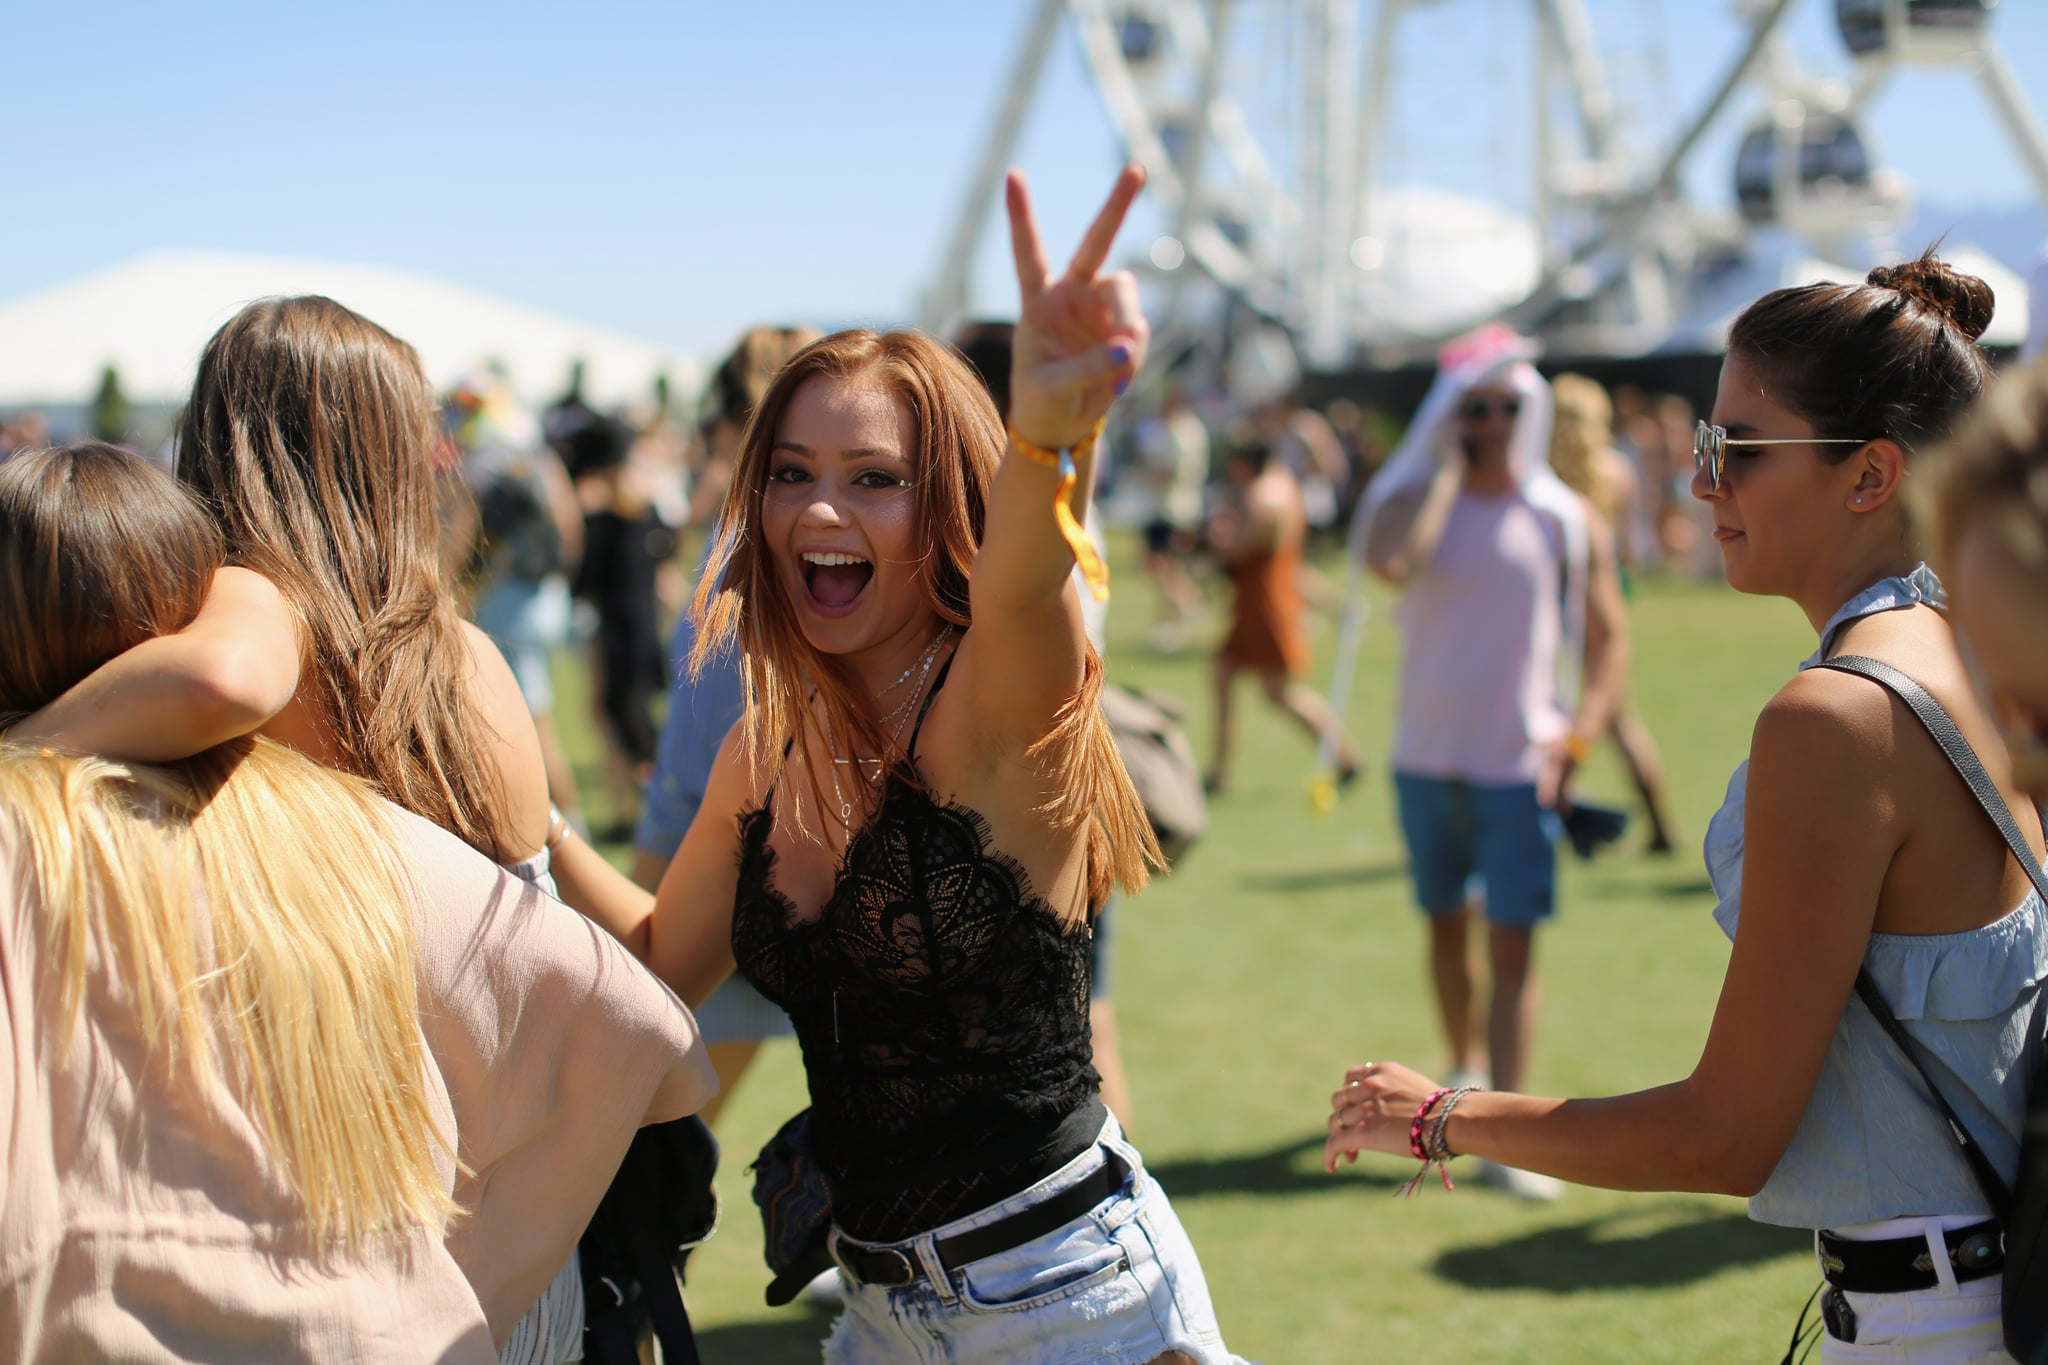 INDIO, CA - APRIL 14:  Festivalgoer gives the peace sign during day 1 of the Coachella Valley Music And Arts Festival (Weekend 1) at the Empire Polo Club on April 14, 2017 in Indio, California.  (Photo by David McNew/Getty Images for Coachella)